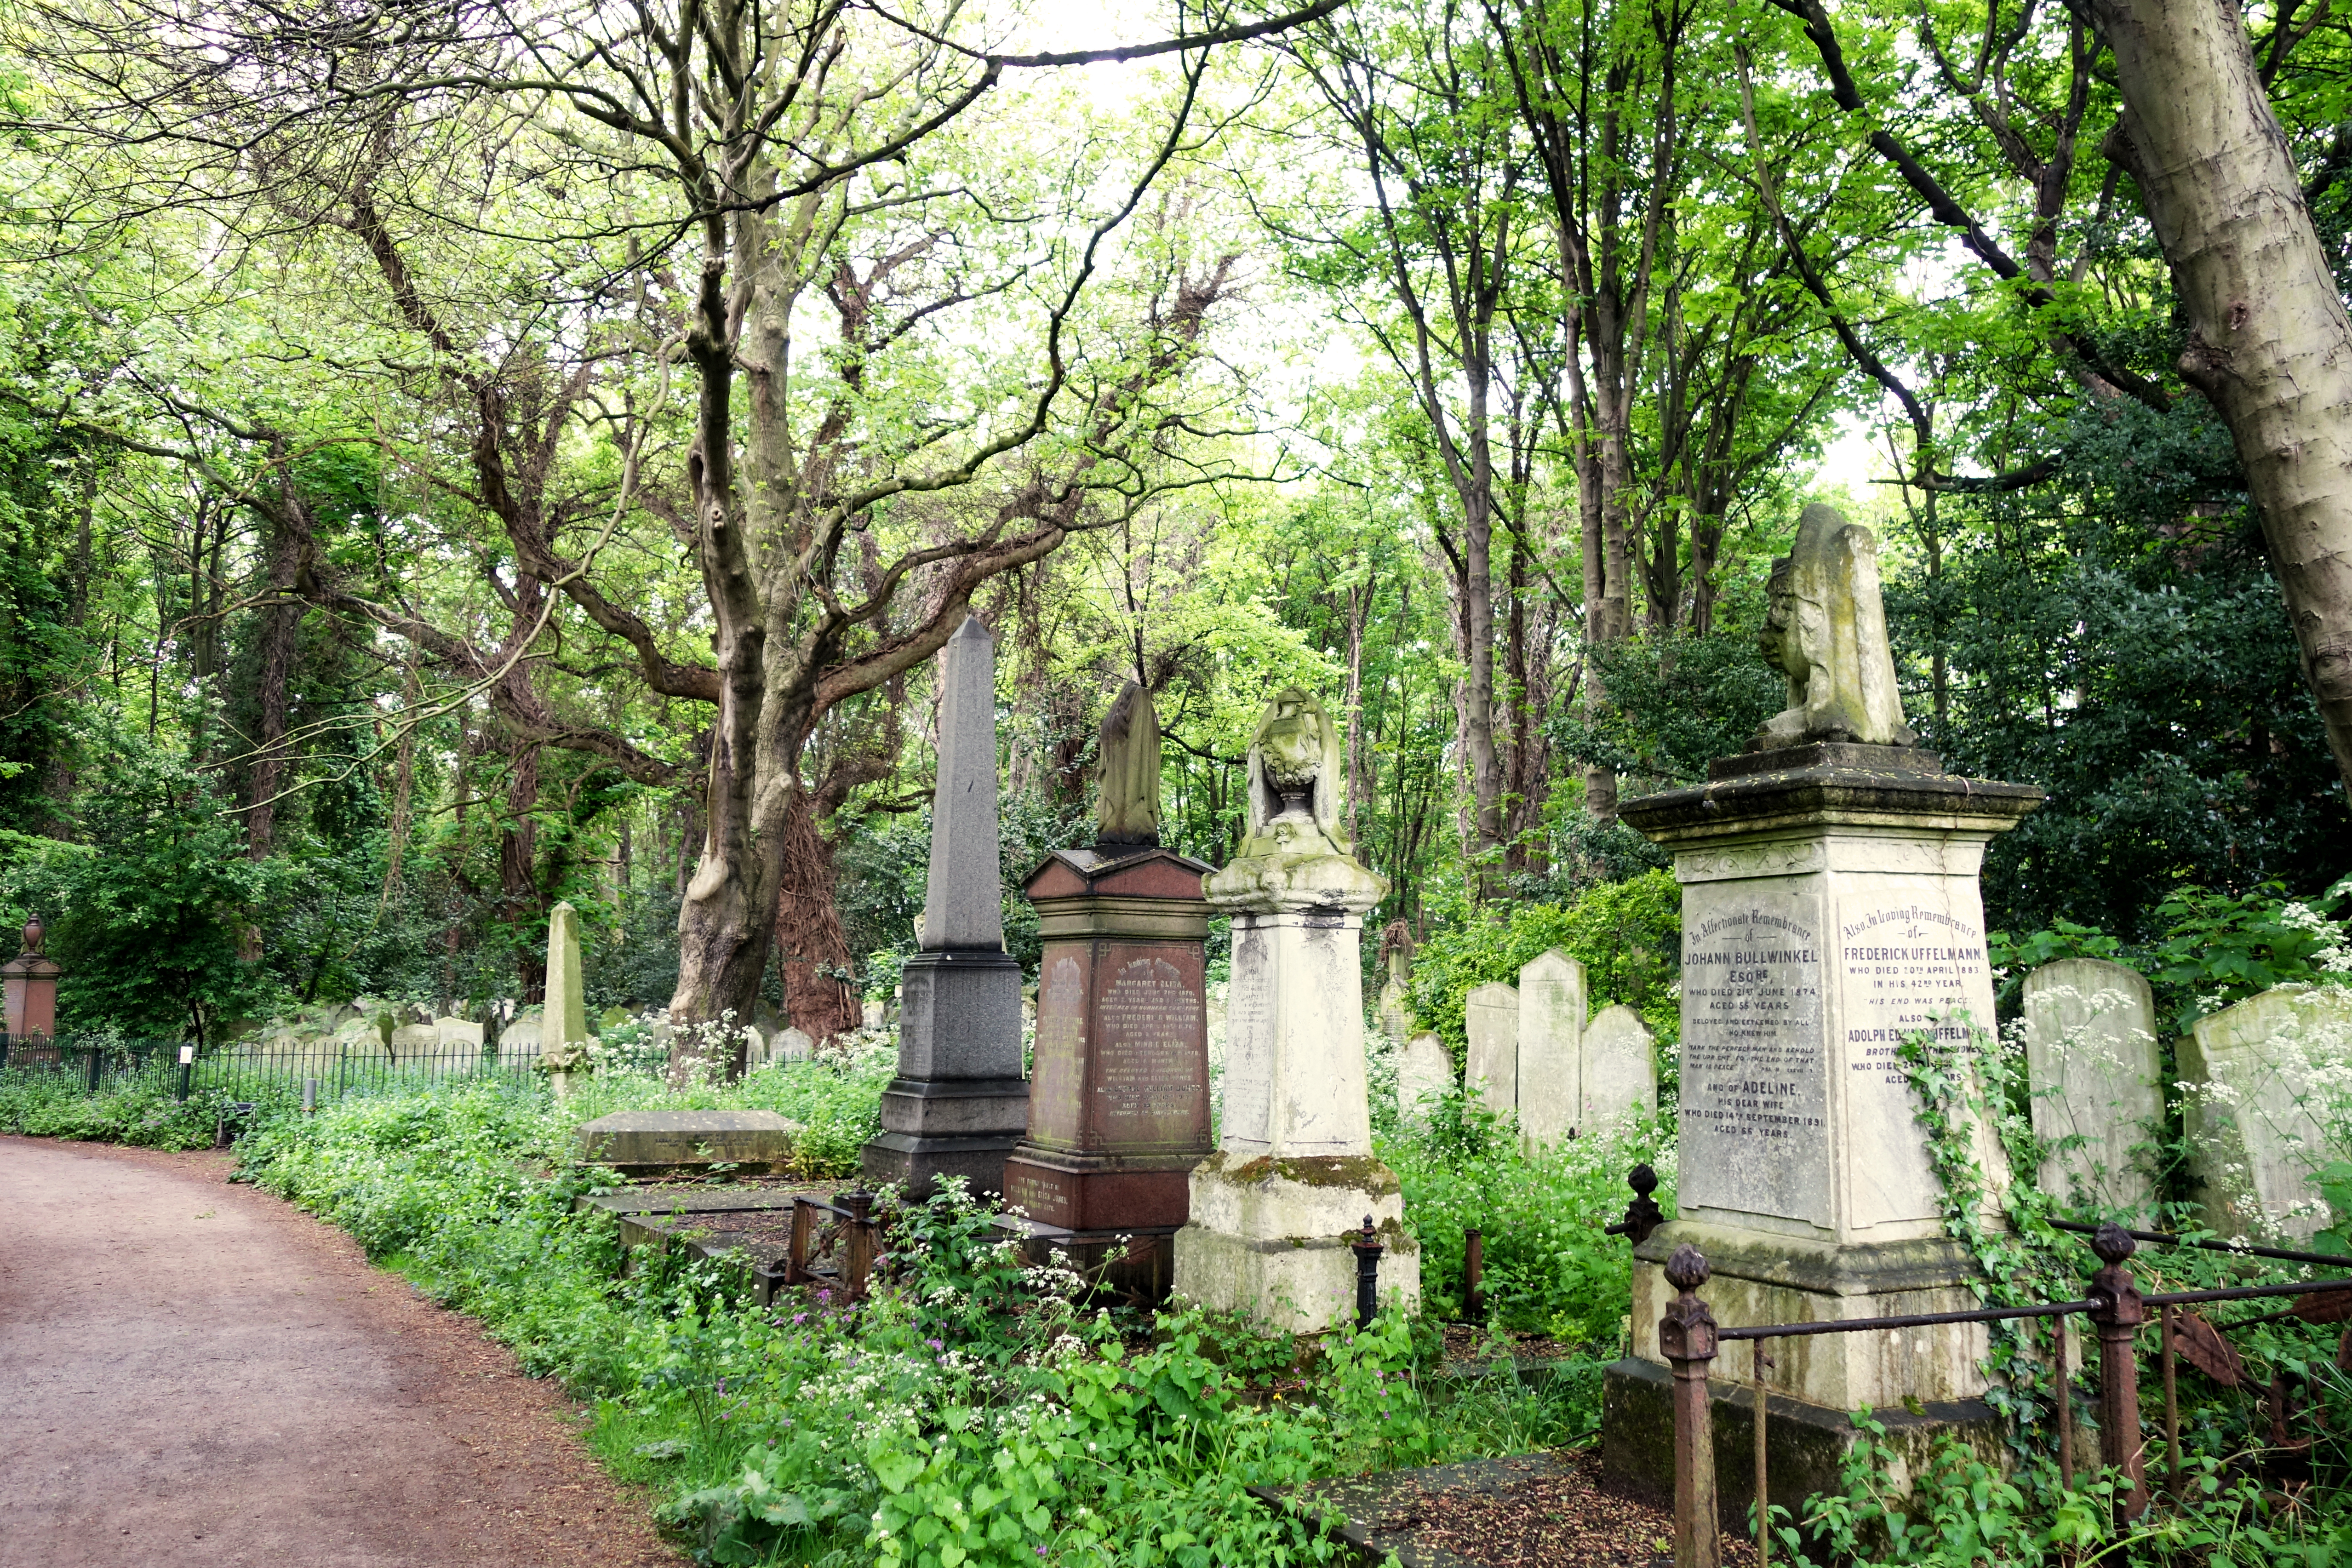 We Went On A Walk Around Tower Hamlets Cemetery Park in a